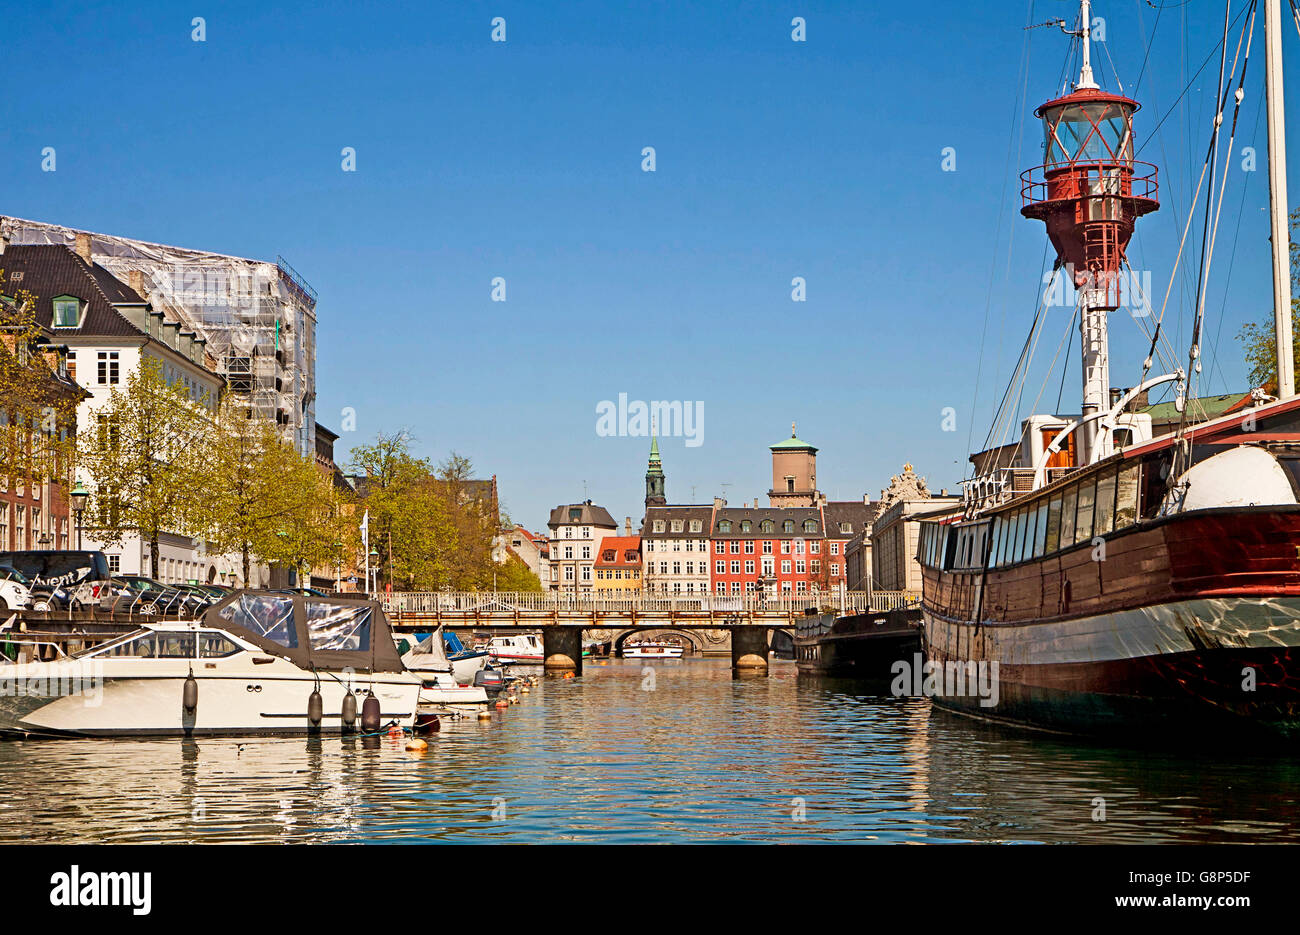 Copenhagen, Denmark - view of Frederiksholm Kanal with Lightvessel No. XI  house boat  and  bridges - Stock Image